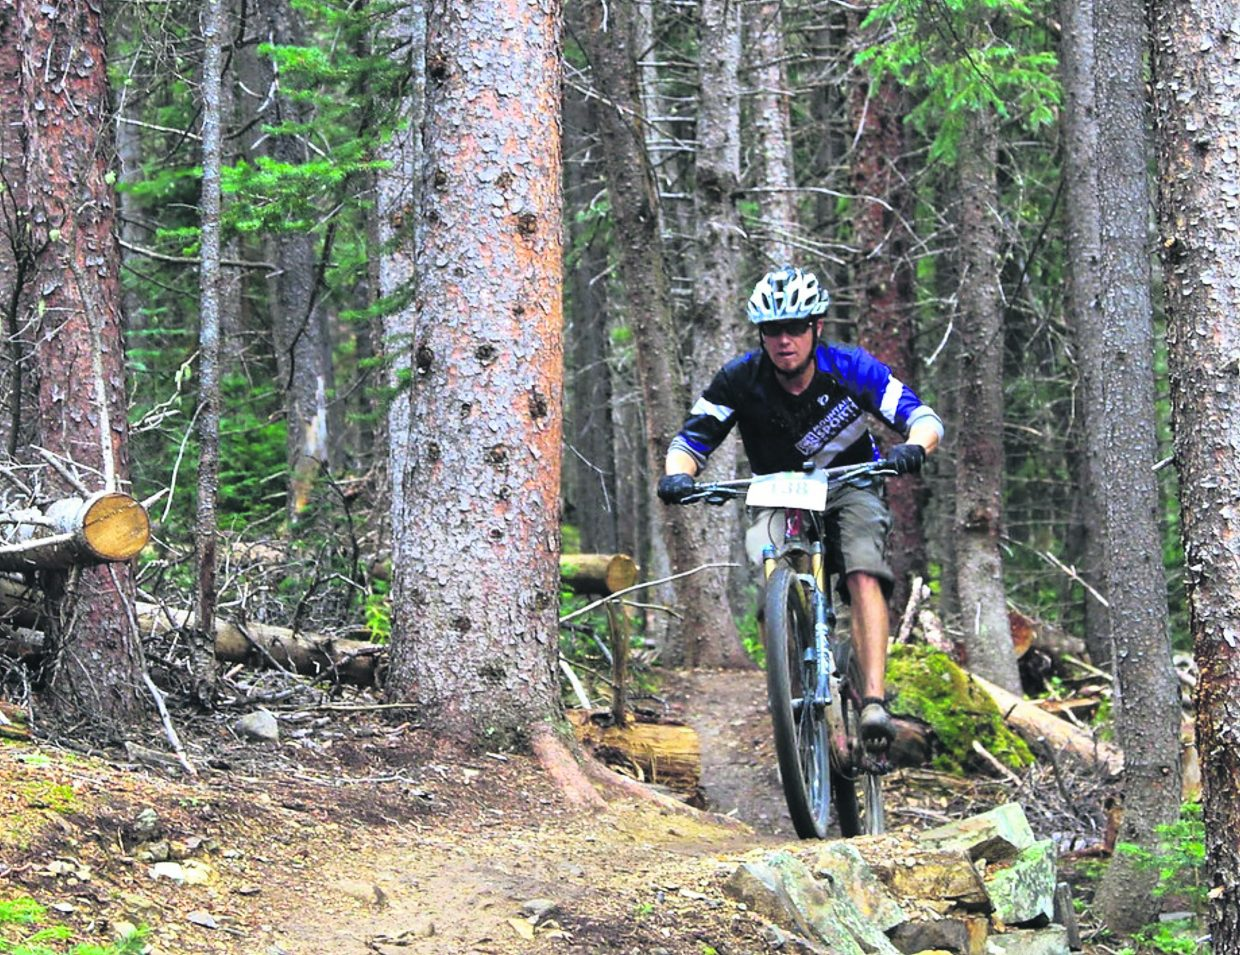 A competitor powers through the trees during the 2016 Fall Classic mountain bike race on Sept. 4, the final event of the summer-long Summit Mountain Challenge series. The event drew about 200 total riders for a 30-mile long course and 21-mile short course.